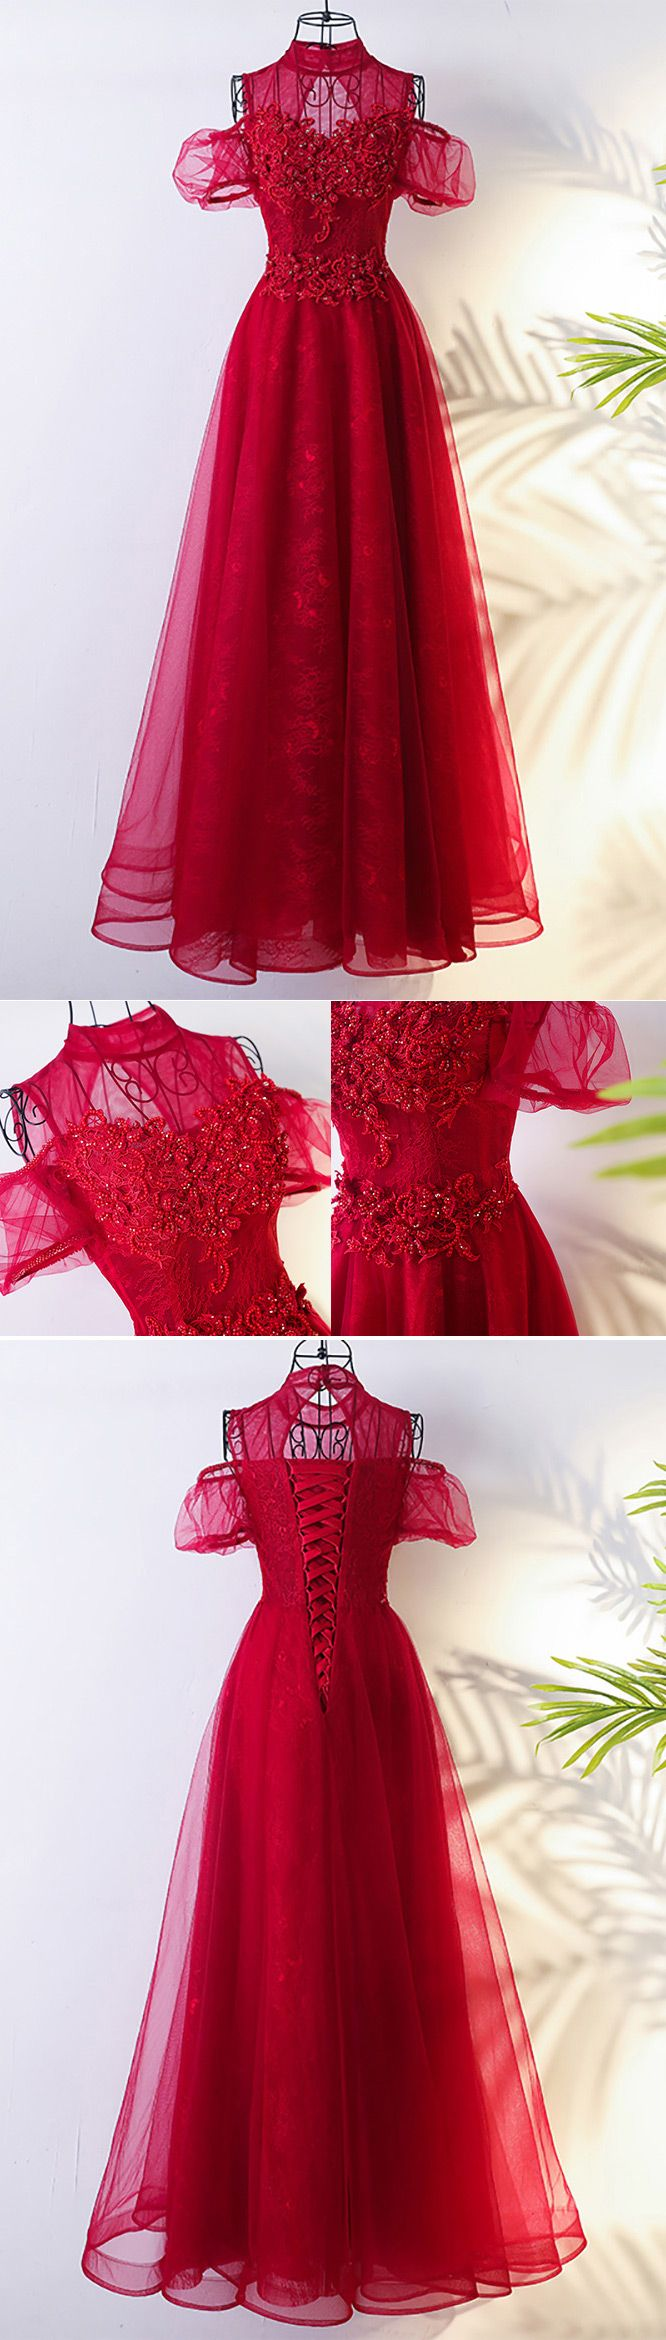 Only $118, Prom Dresses Lolita Long Tulle Burgundy Formal Party Dress With High Neck #MYX18219 at #GemGrace. View more special Bridal Party Dresses,Prom Dresses now? GemGrace is a solution for those who want to buy delicate gowns with affordable prices, a solution for those who have unique ideas about their gowns. 2018 new arrivals, shop now to get $10 off!